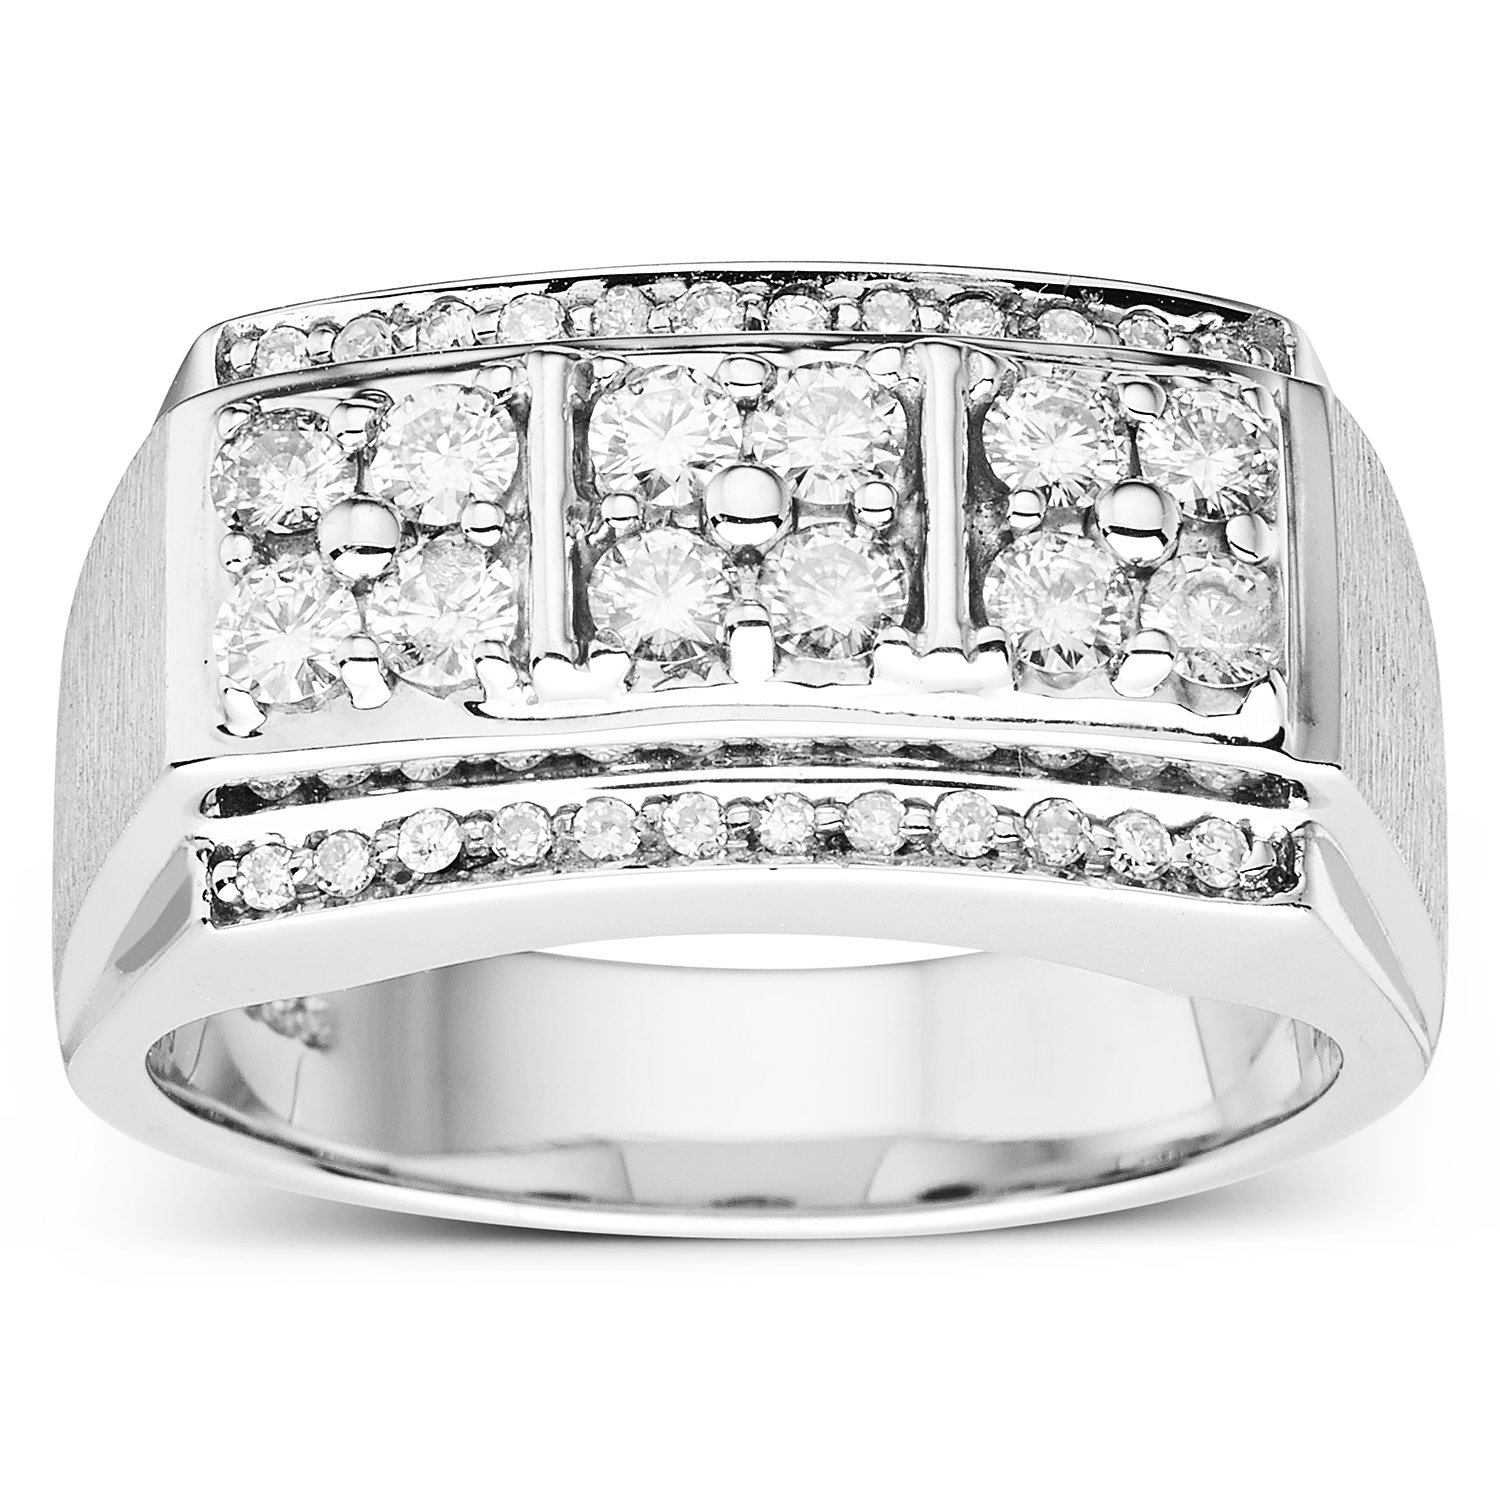 Forever Classic Mens Round 3.0mm Moissanite Wedding Band-size 10, 0.84cttw DEW By Charles & Colvard by Charles & Colvard